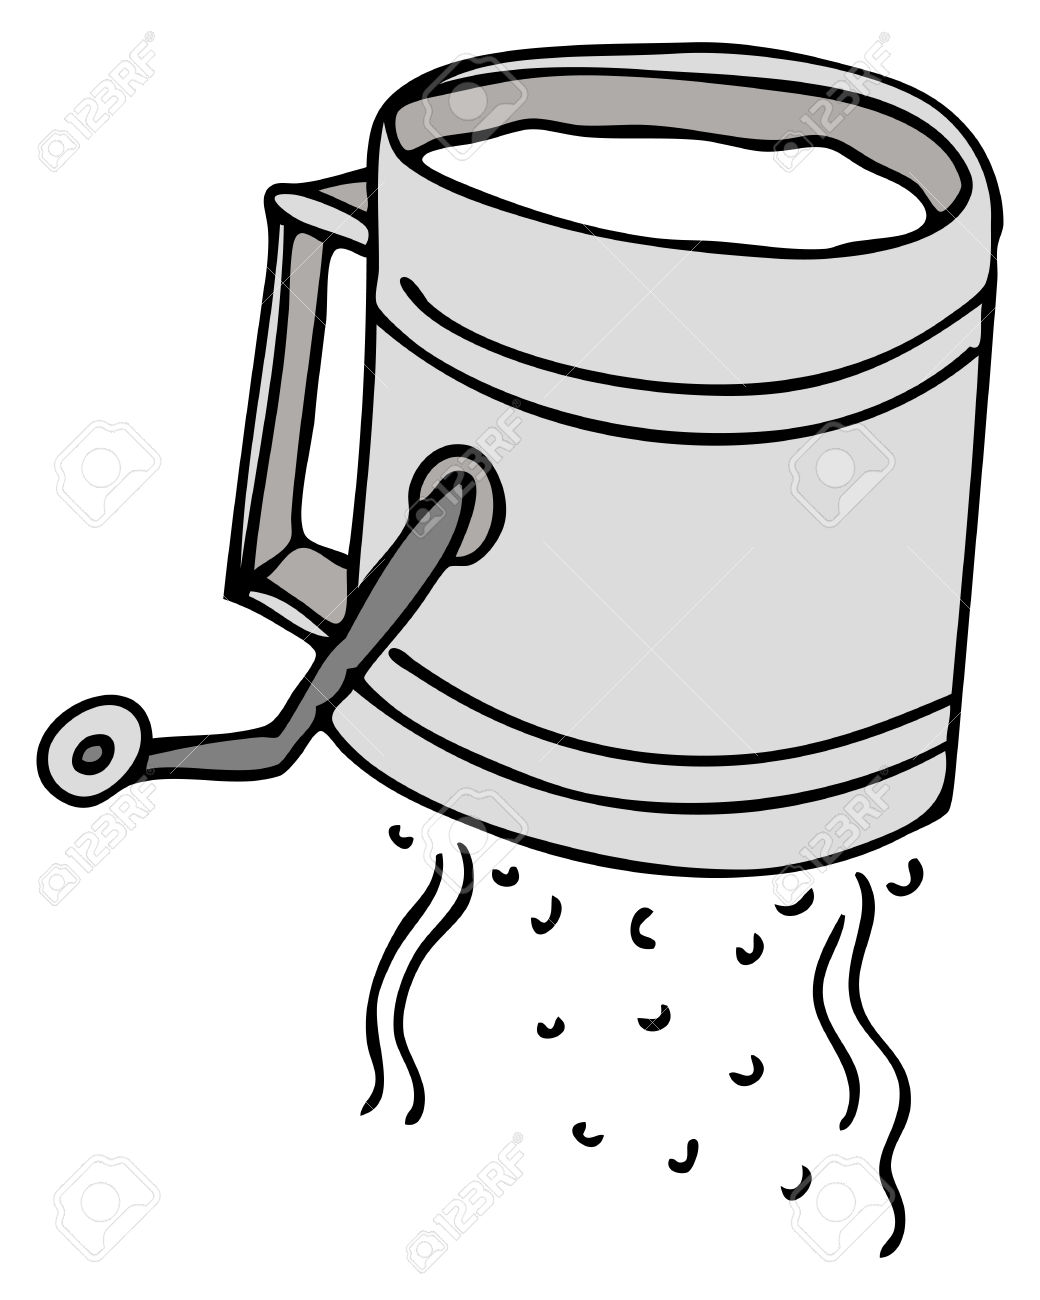 Flour sifter clipart - Clipground